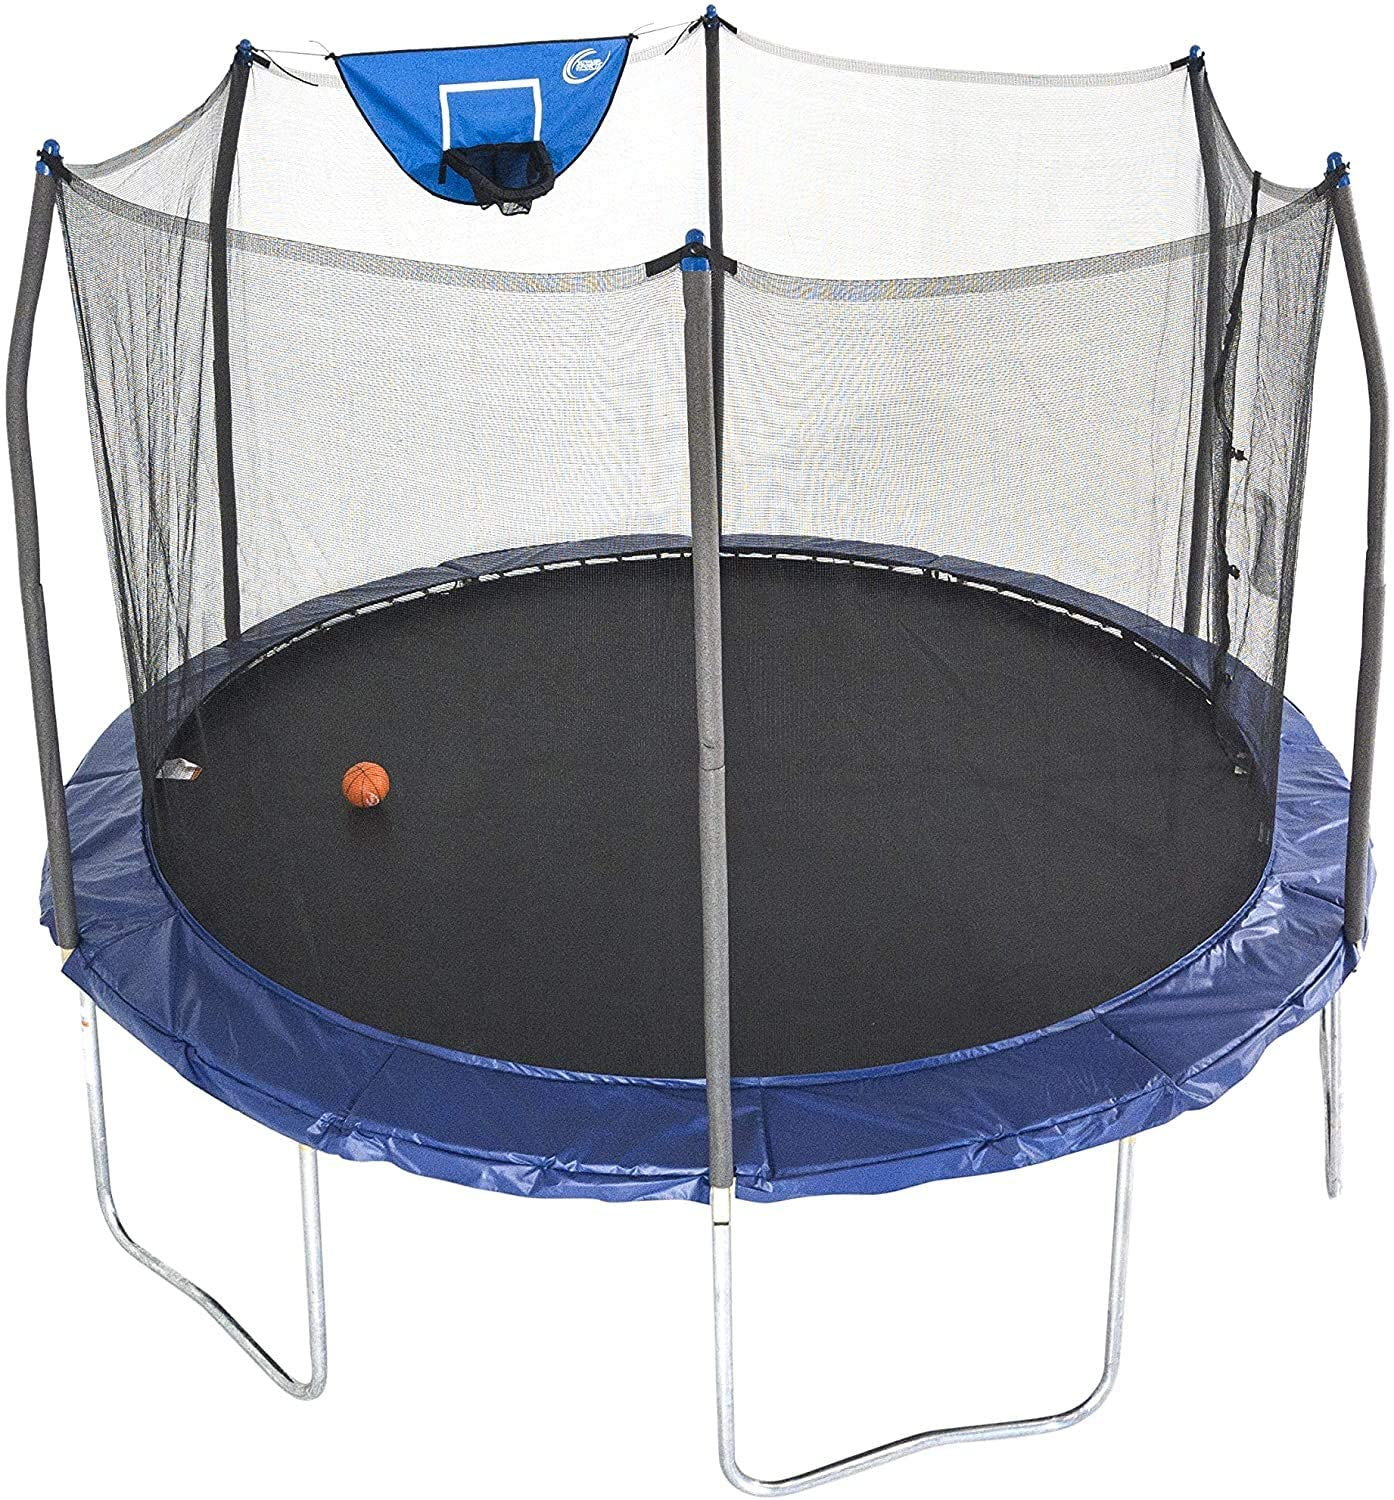 Skywalker Jump N' Dunk Enclosure Net Trampoline, 12-Feet